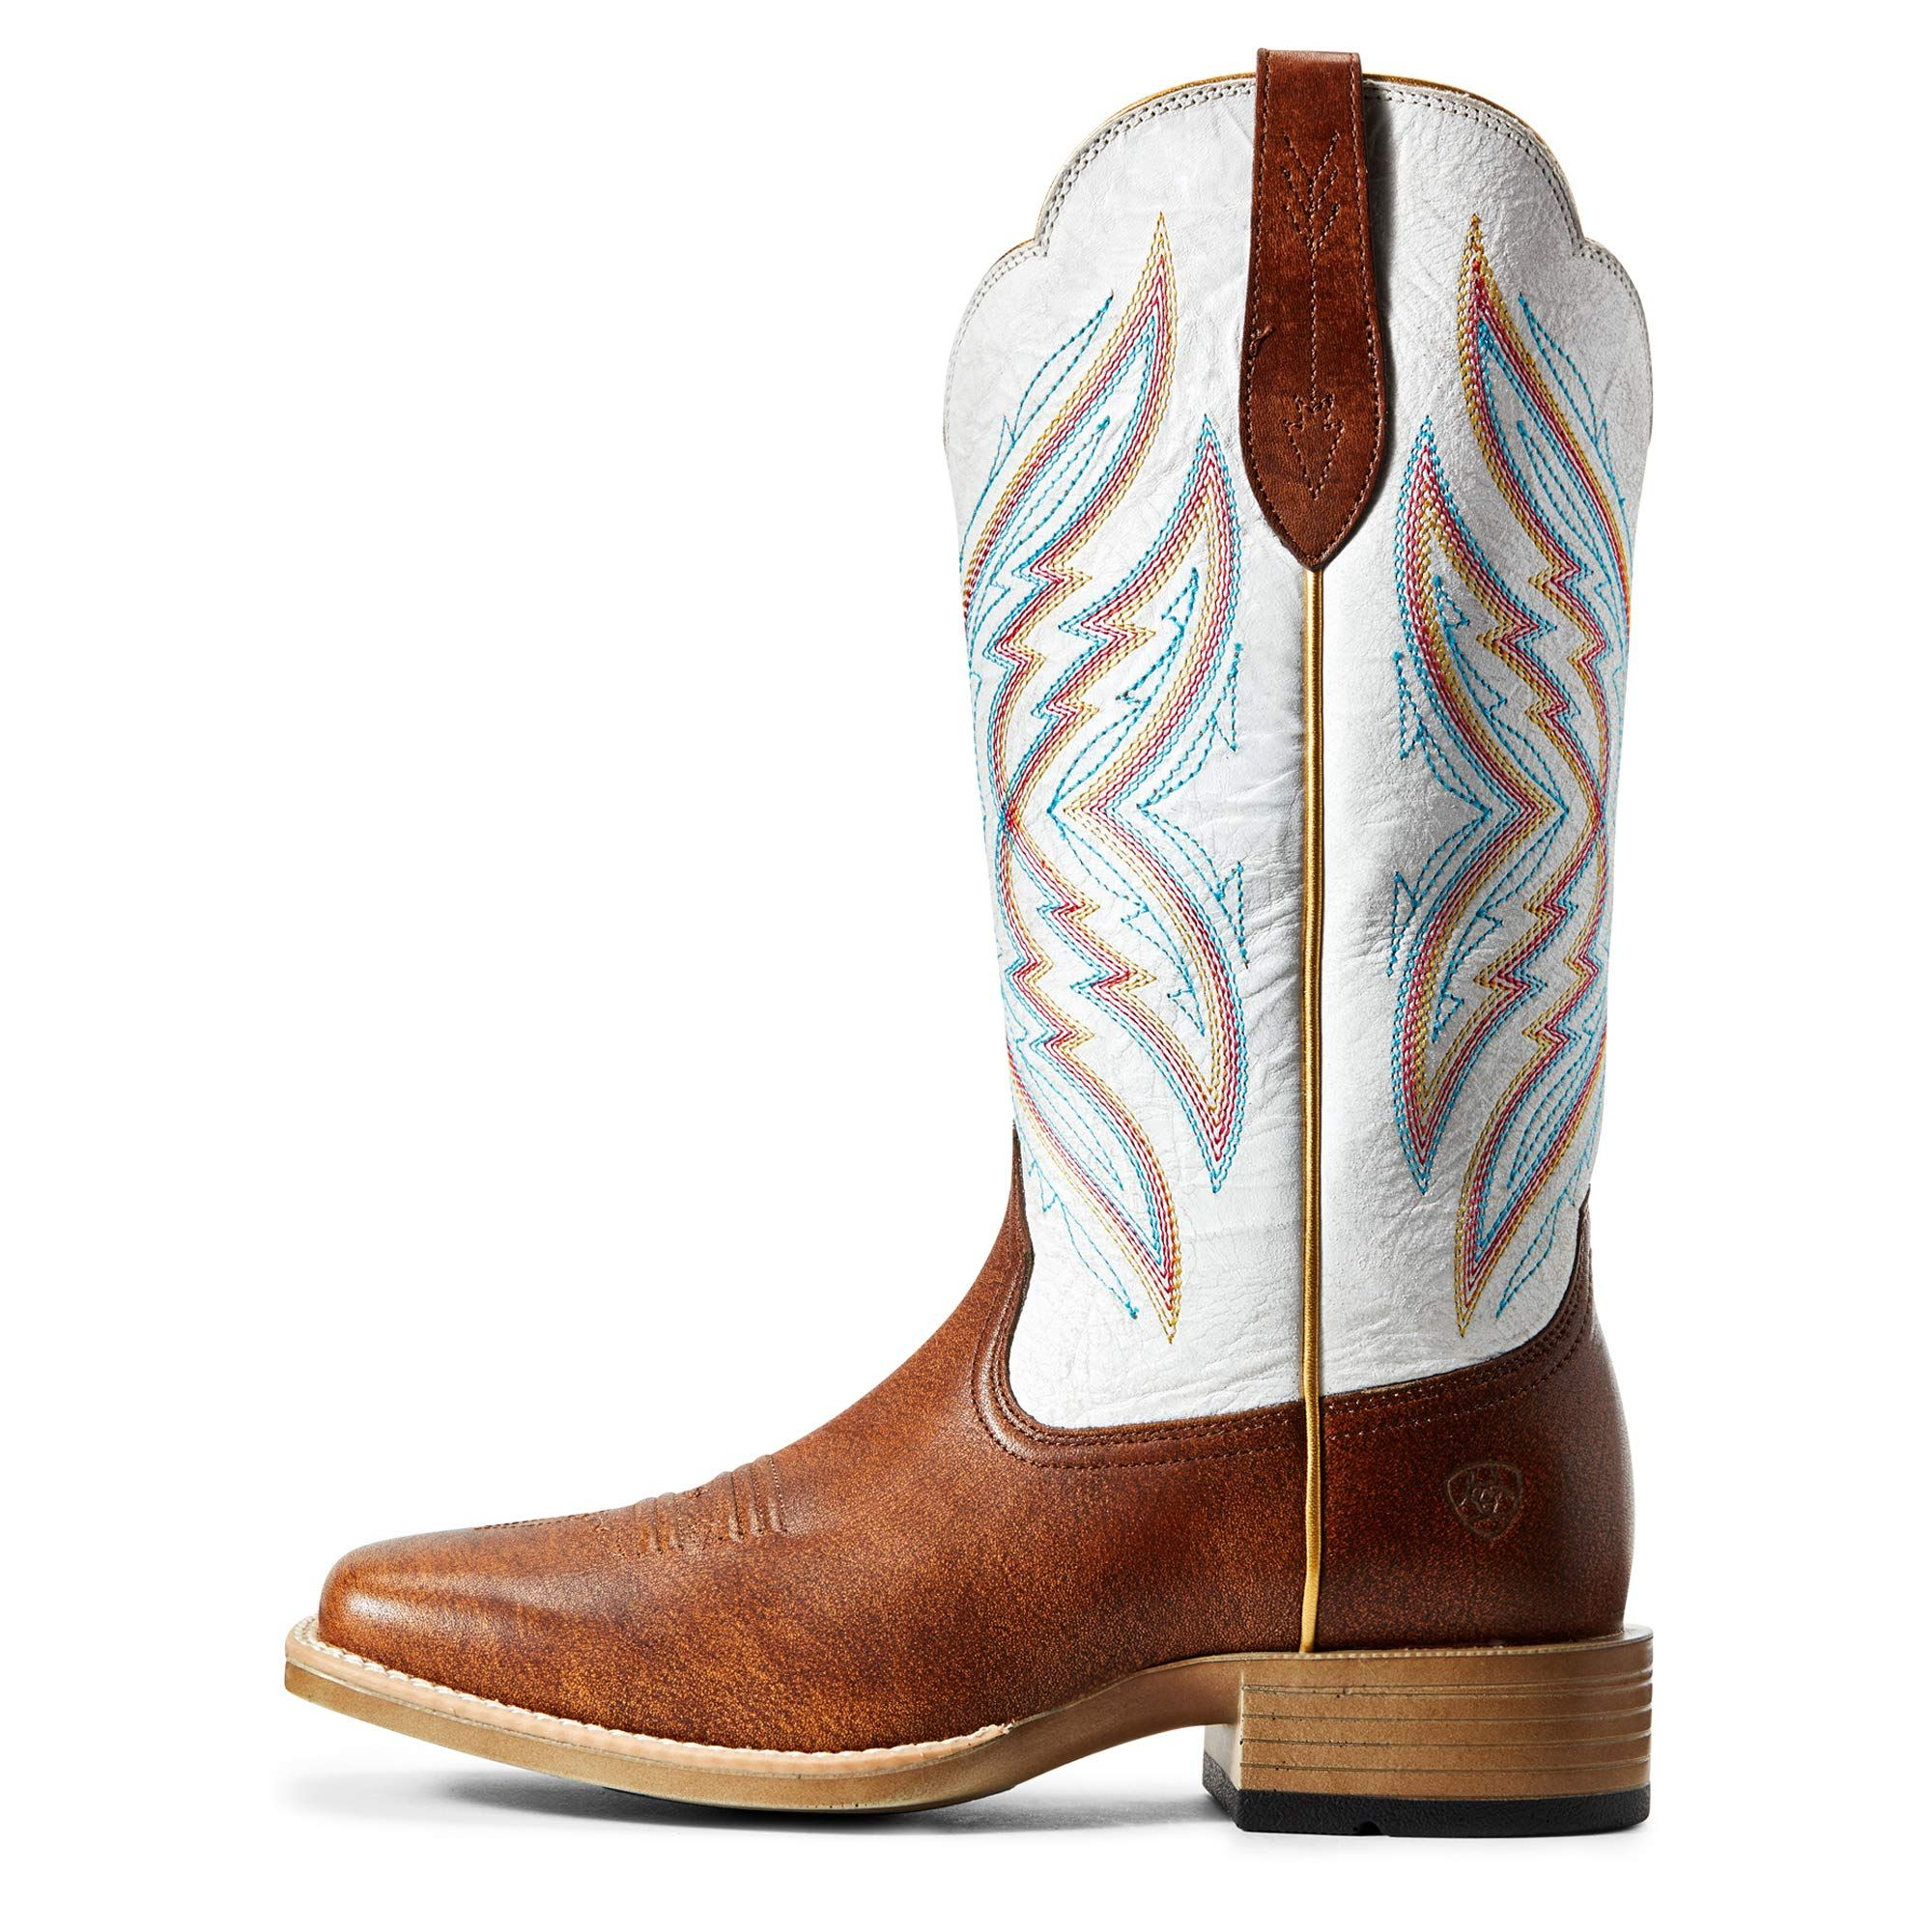 Women/'s Pink Leather Pull On Cowgirl Boots Riding Square Toe Dress Style Fashion